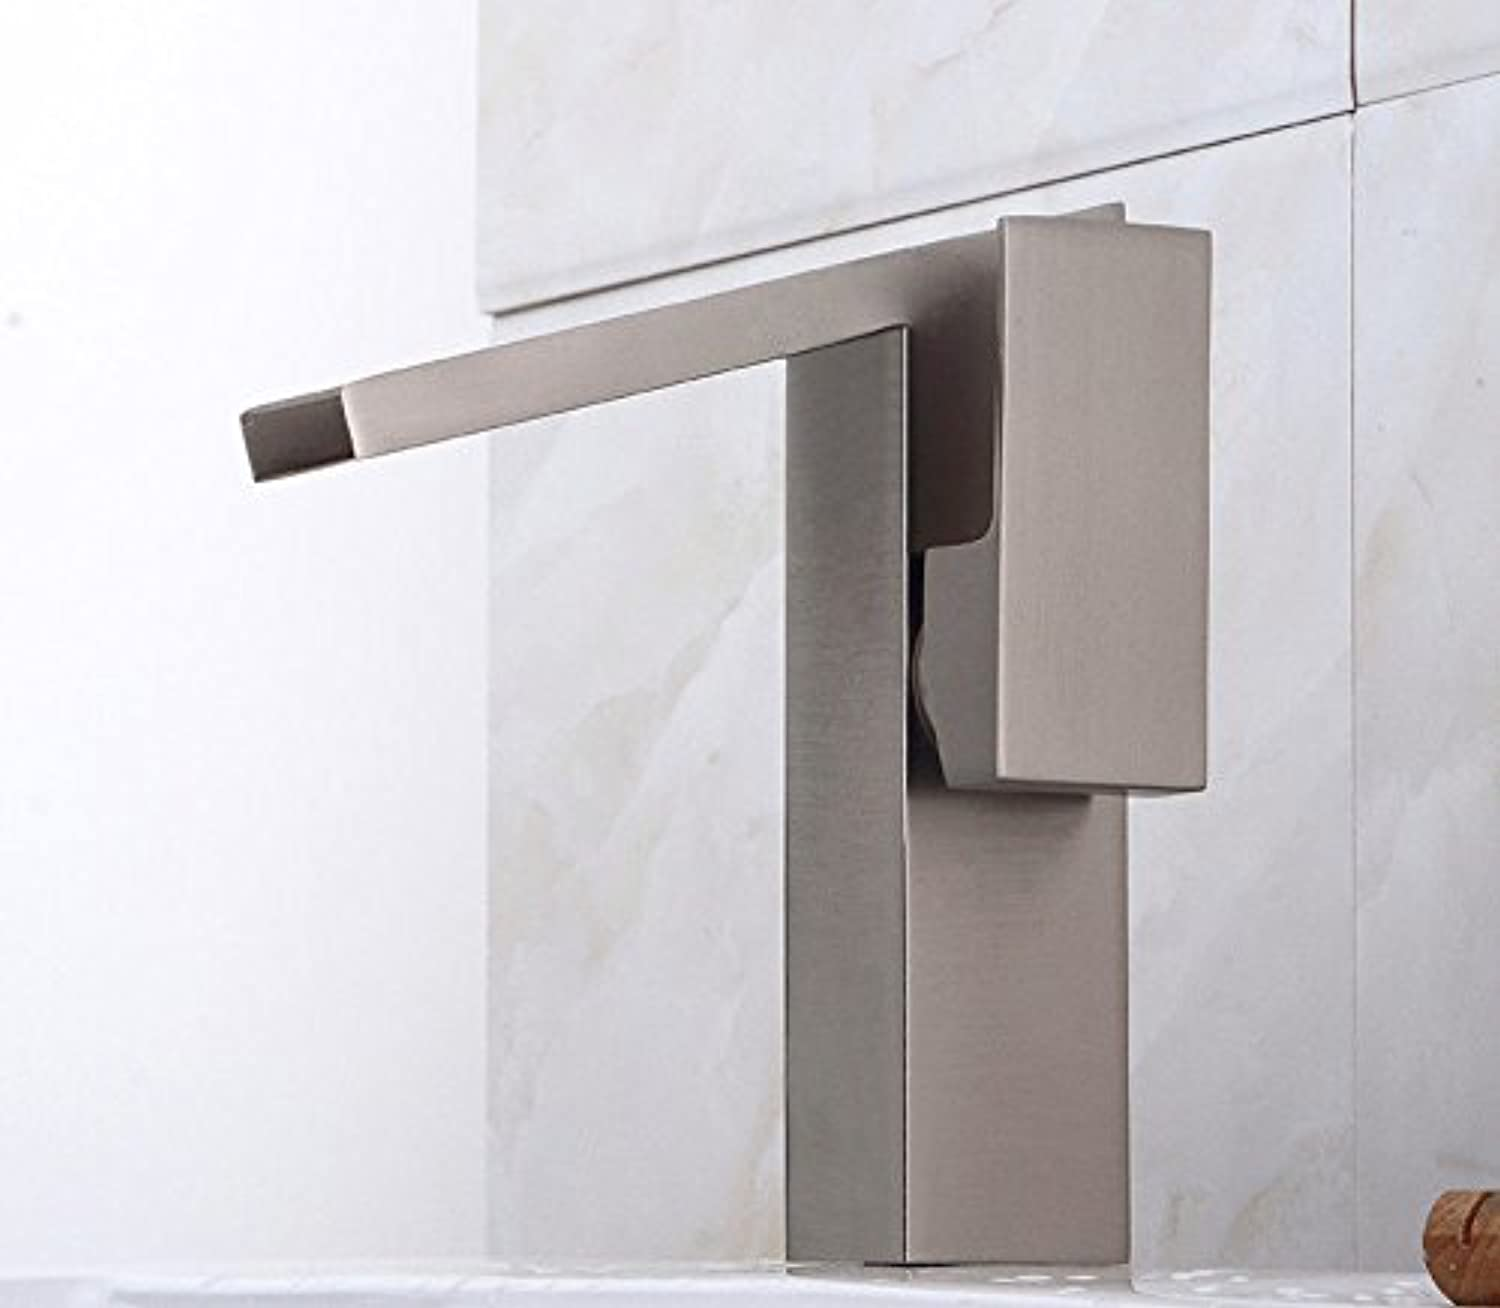 AQMMi Bathroom Sink Mixer Tap Brushed Brass Hot and Cold Water 1 Hole Single Lever Taps for Bathroom Sink